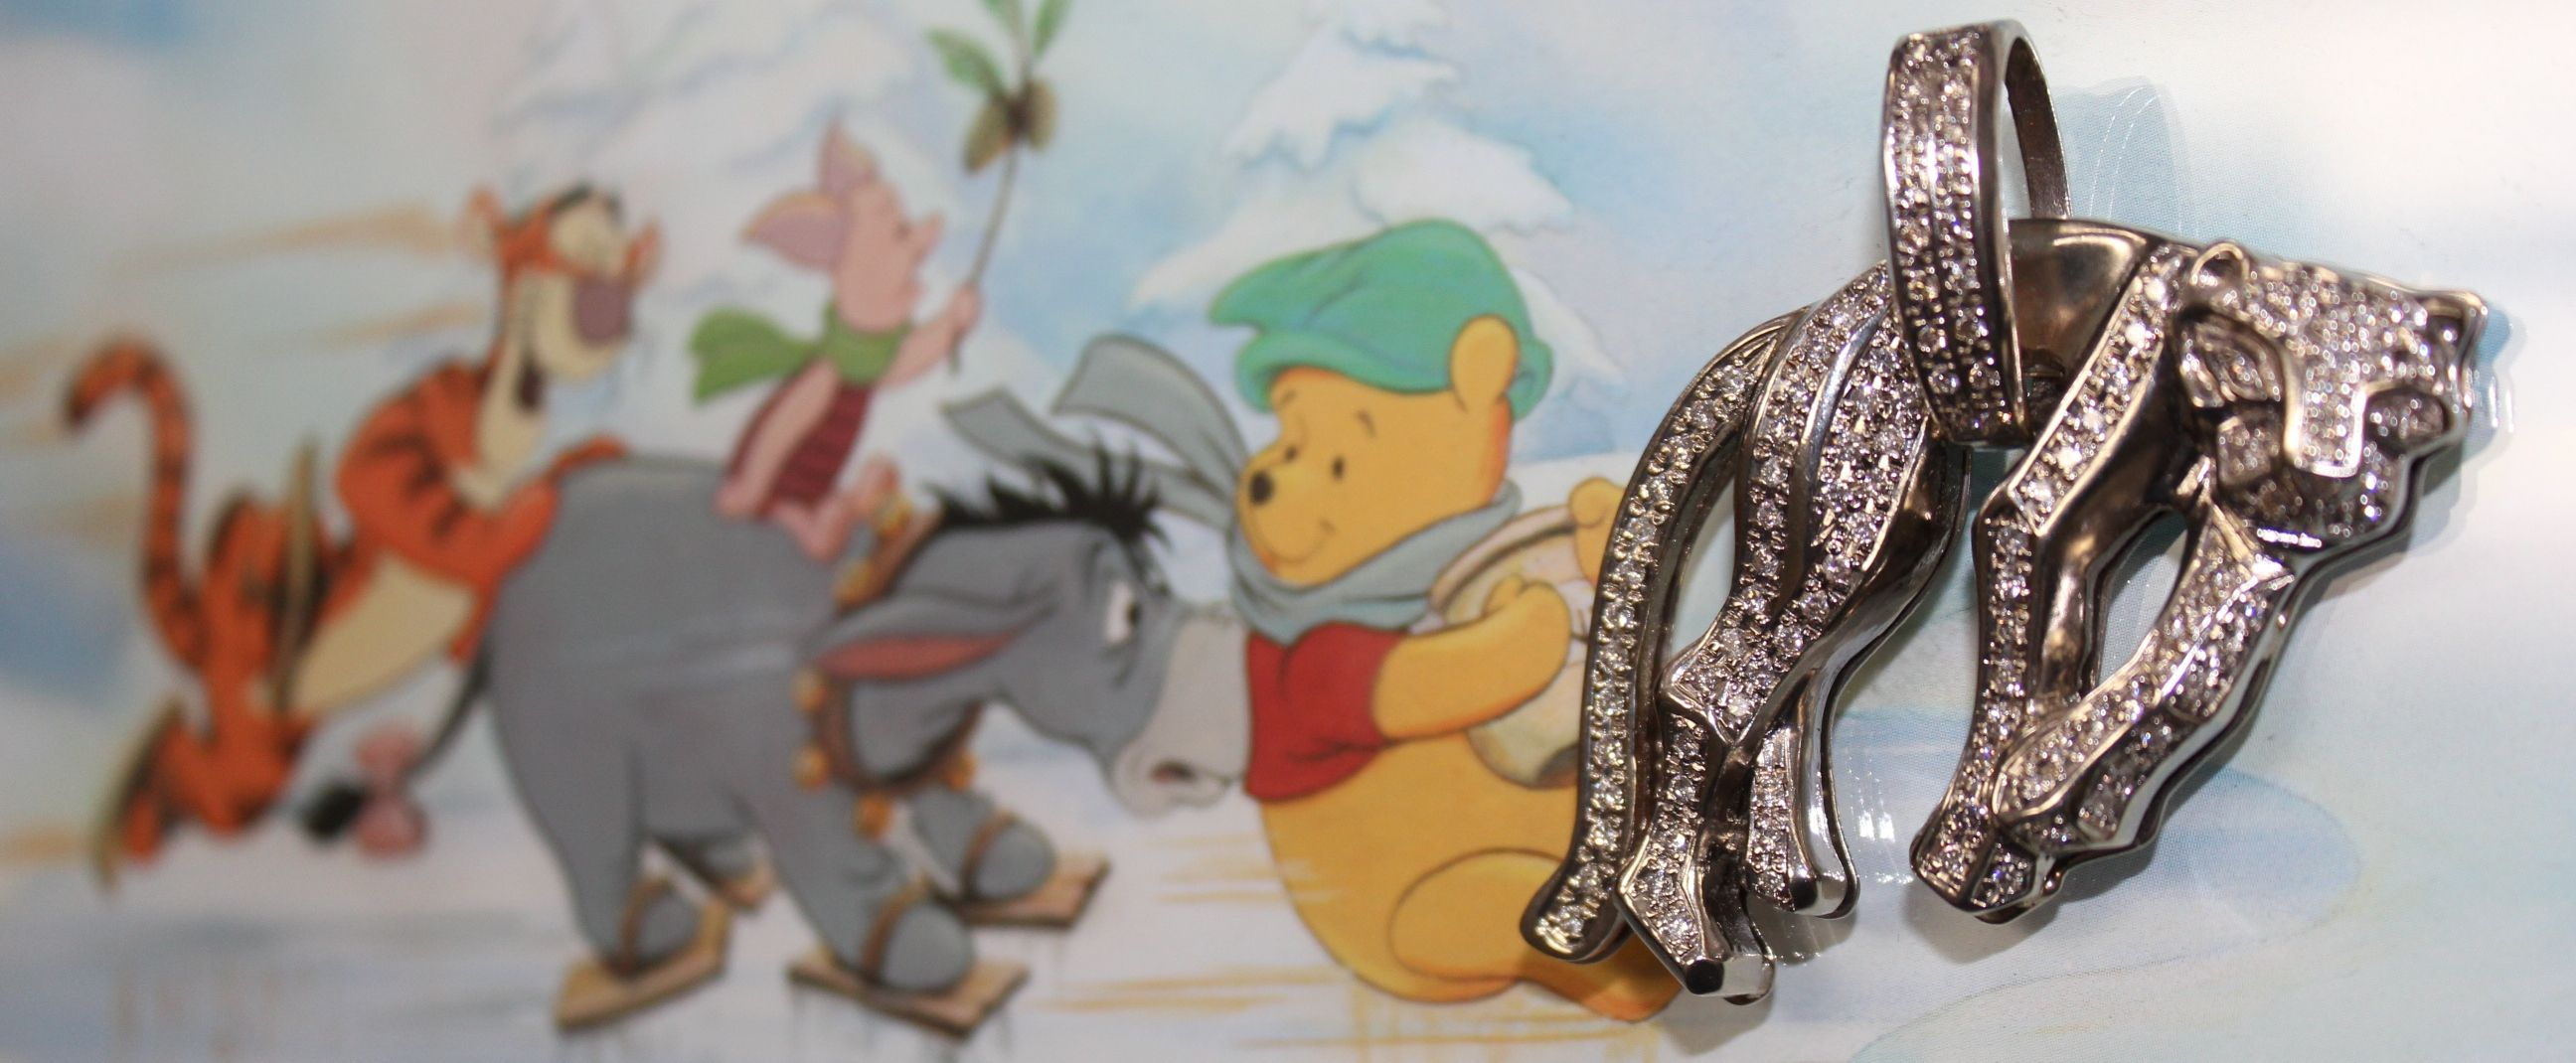 #Panther #Pendant #Playing With #Winnie The Pooh #Jewelry #Pendant #Dynasty #Loan